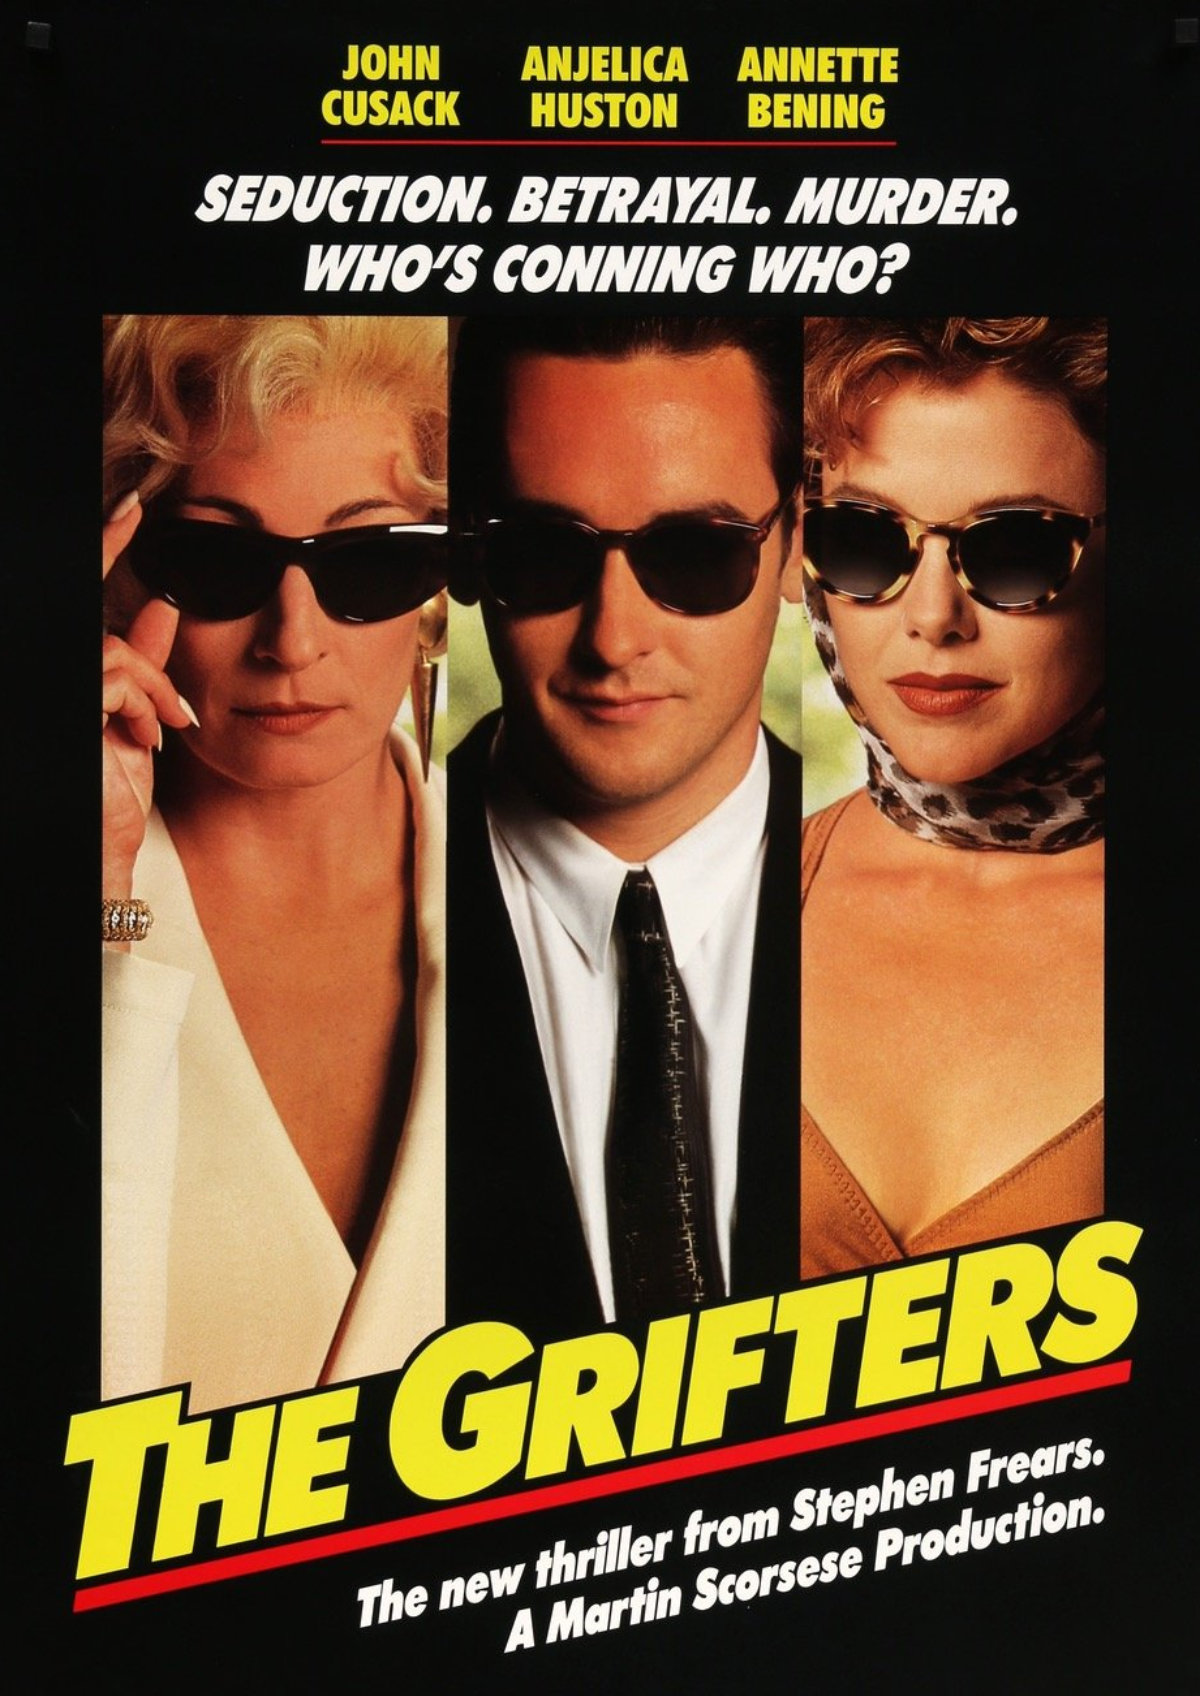 'The Grifters' movie poster